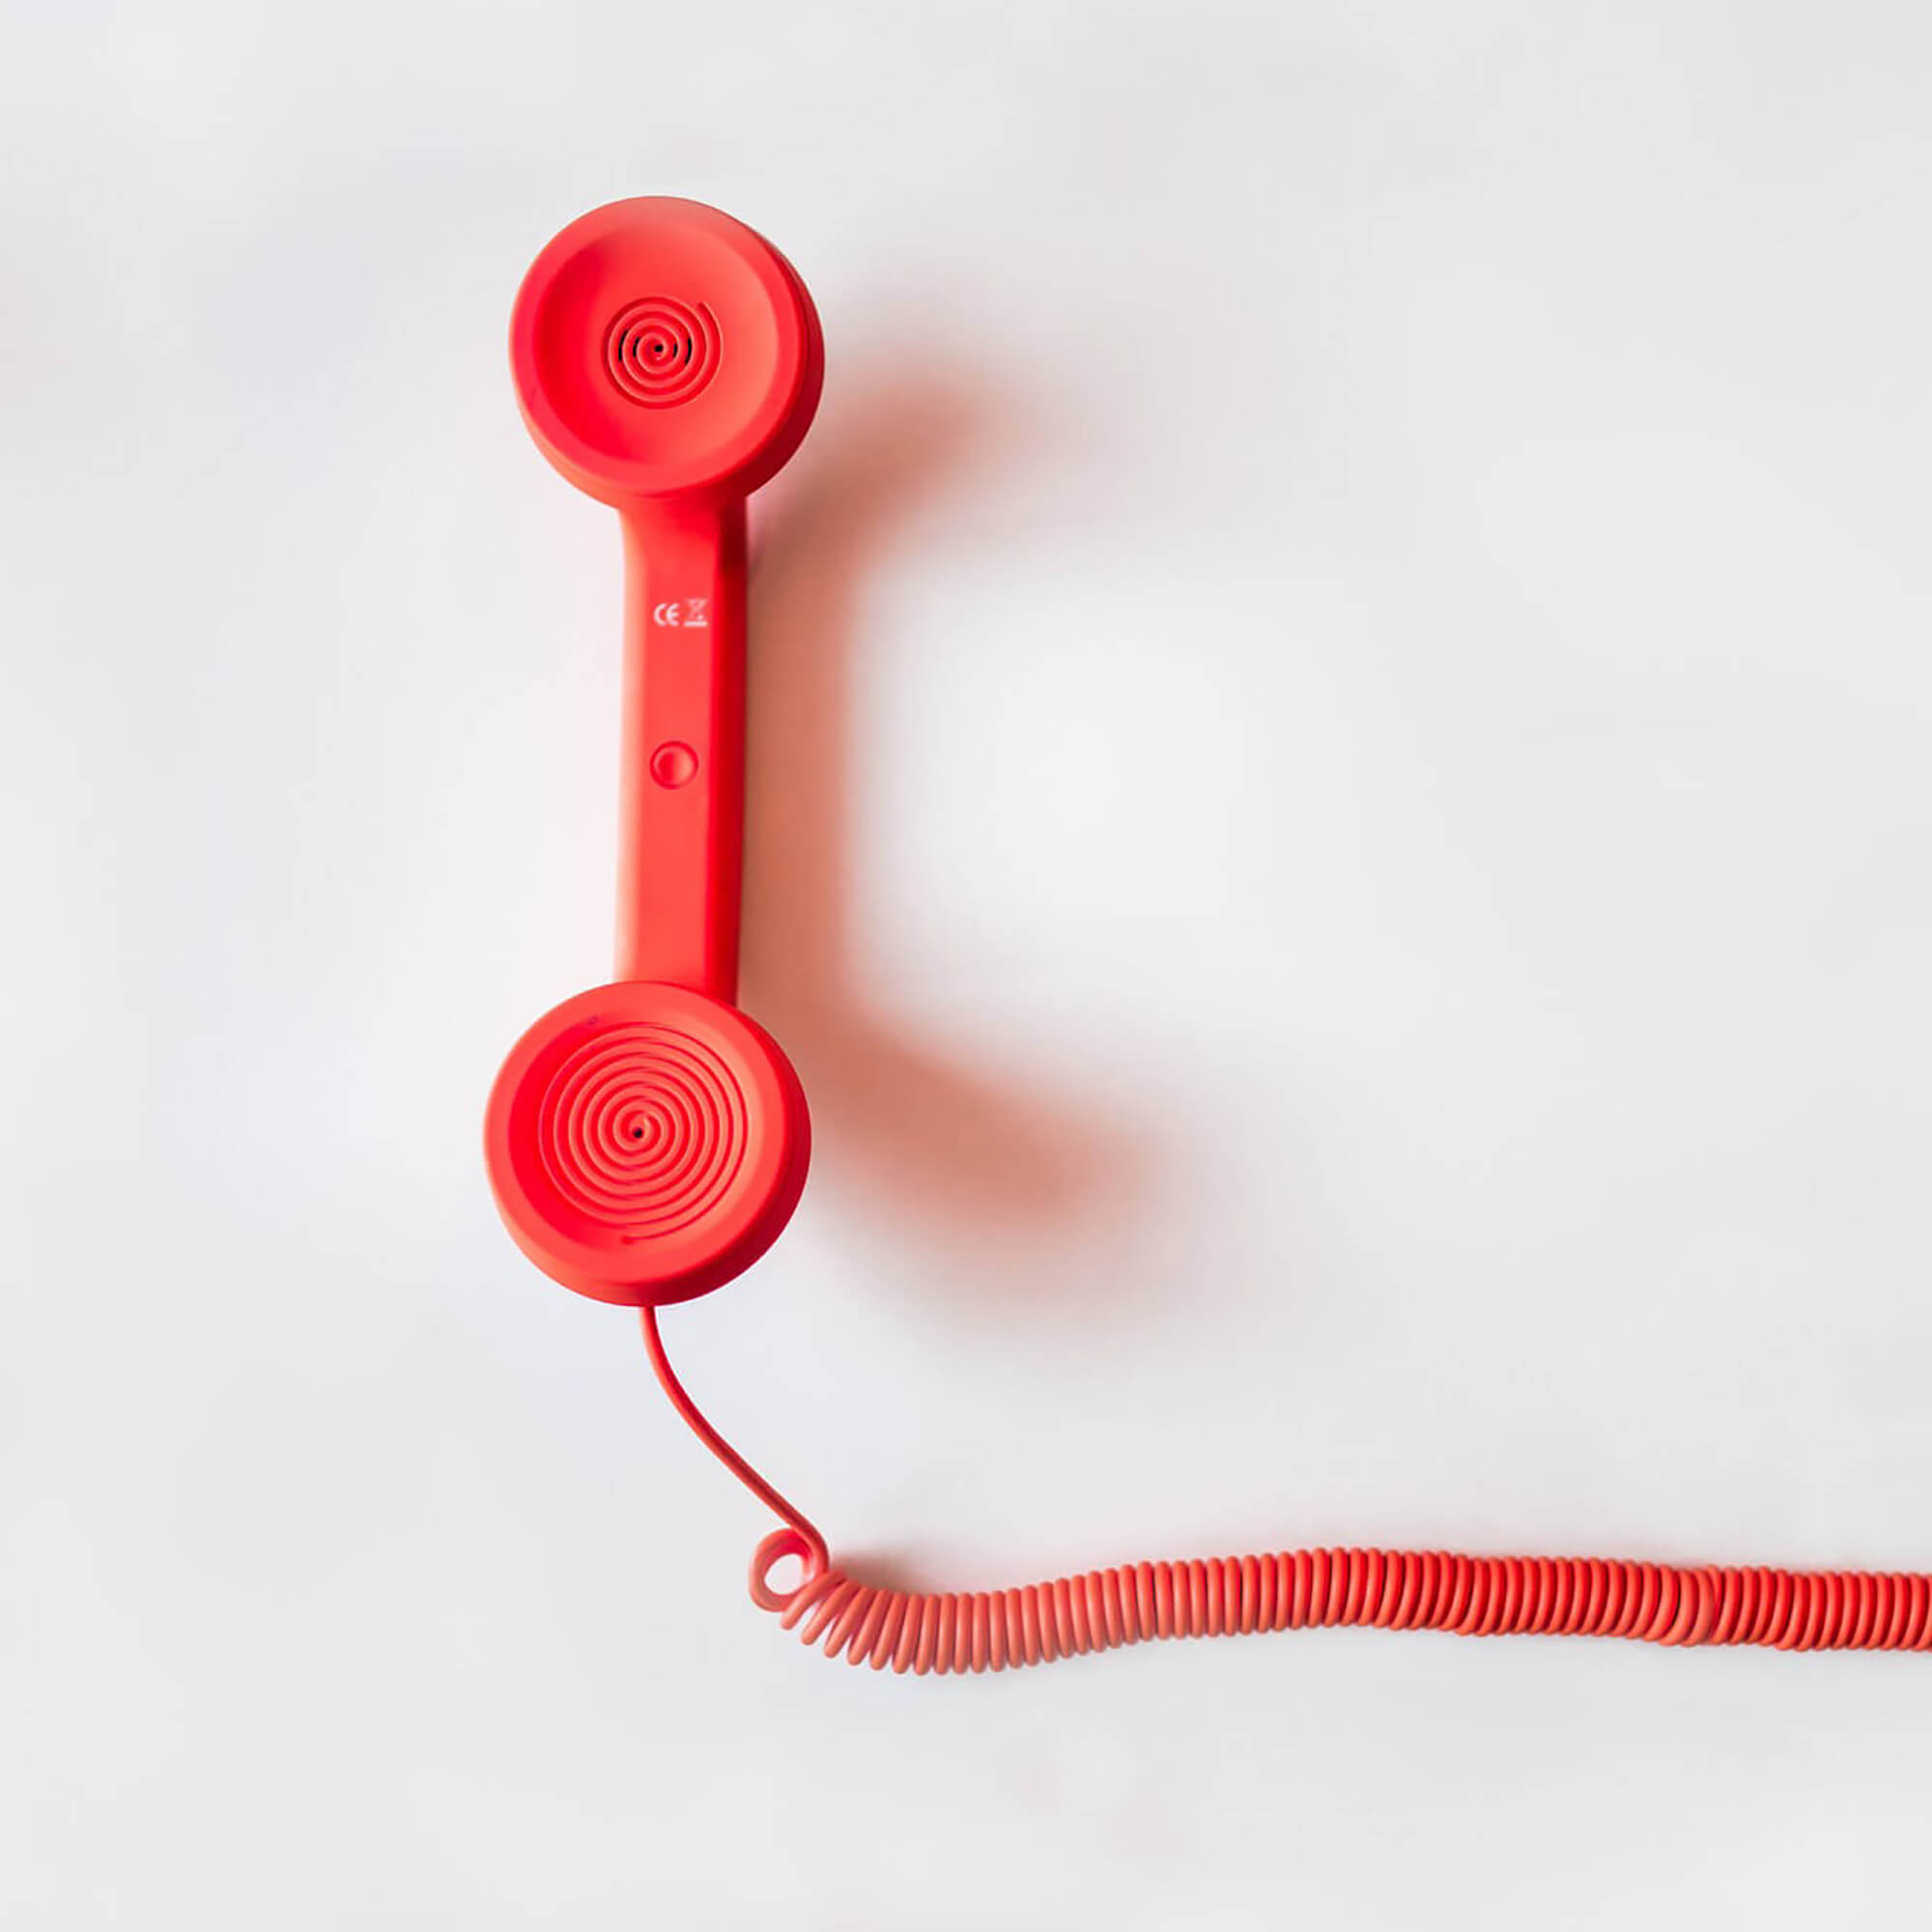 Red telephone against a white background.